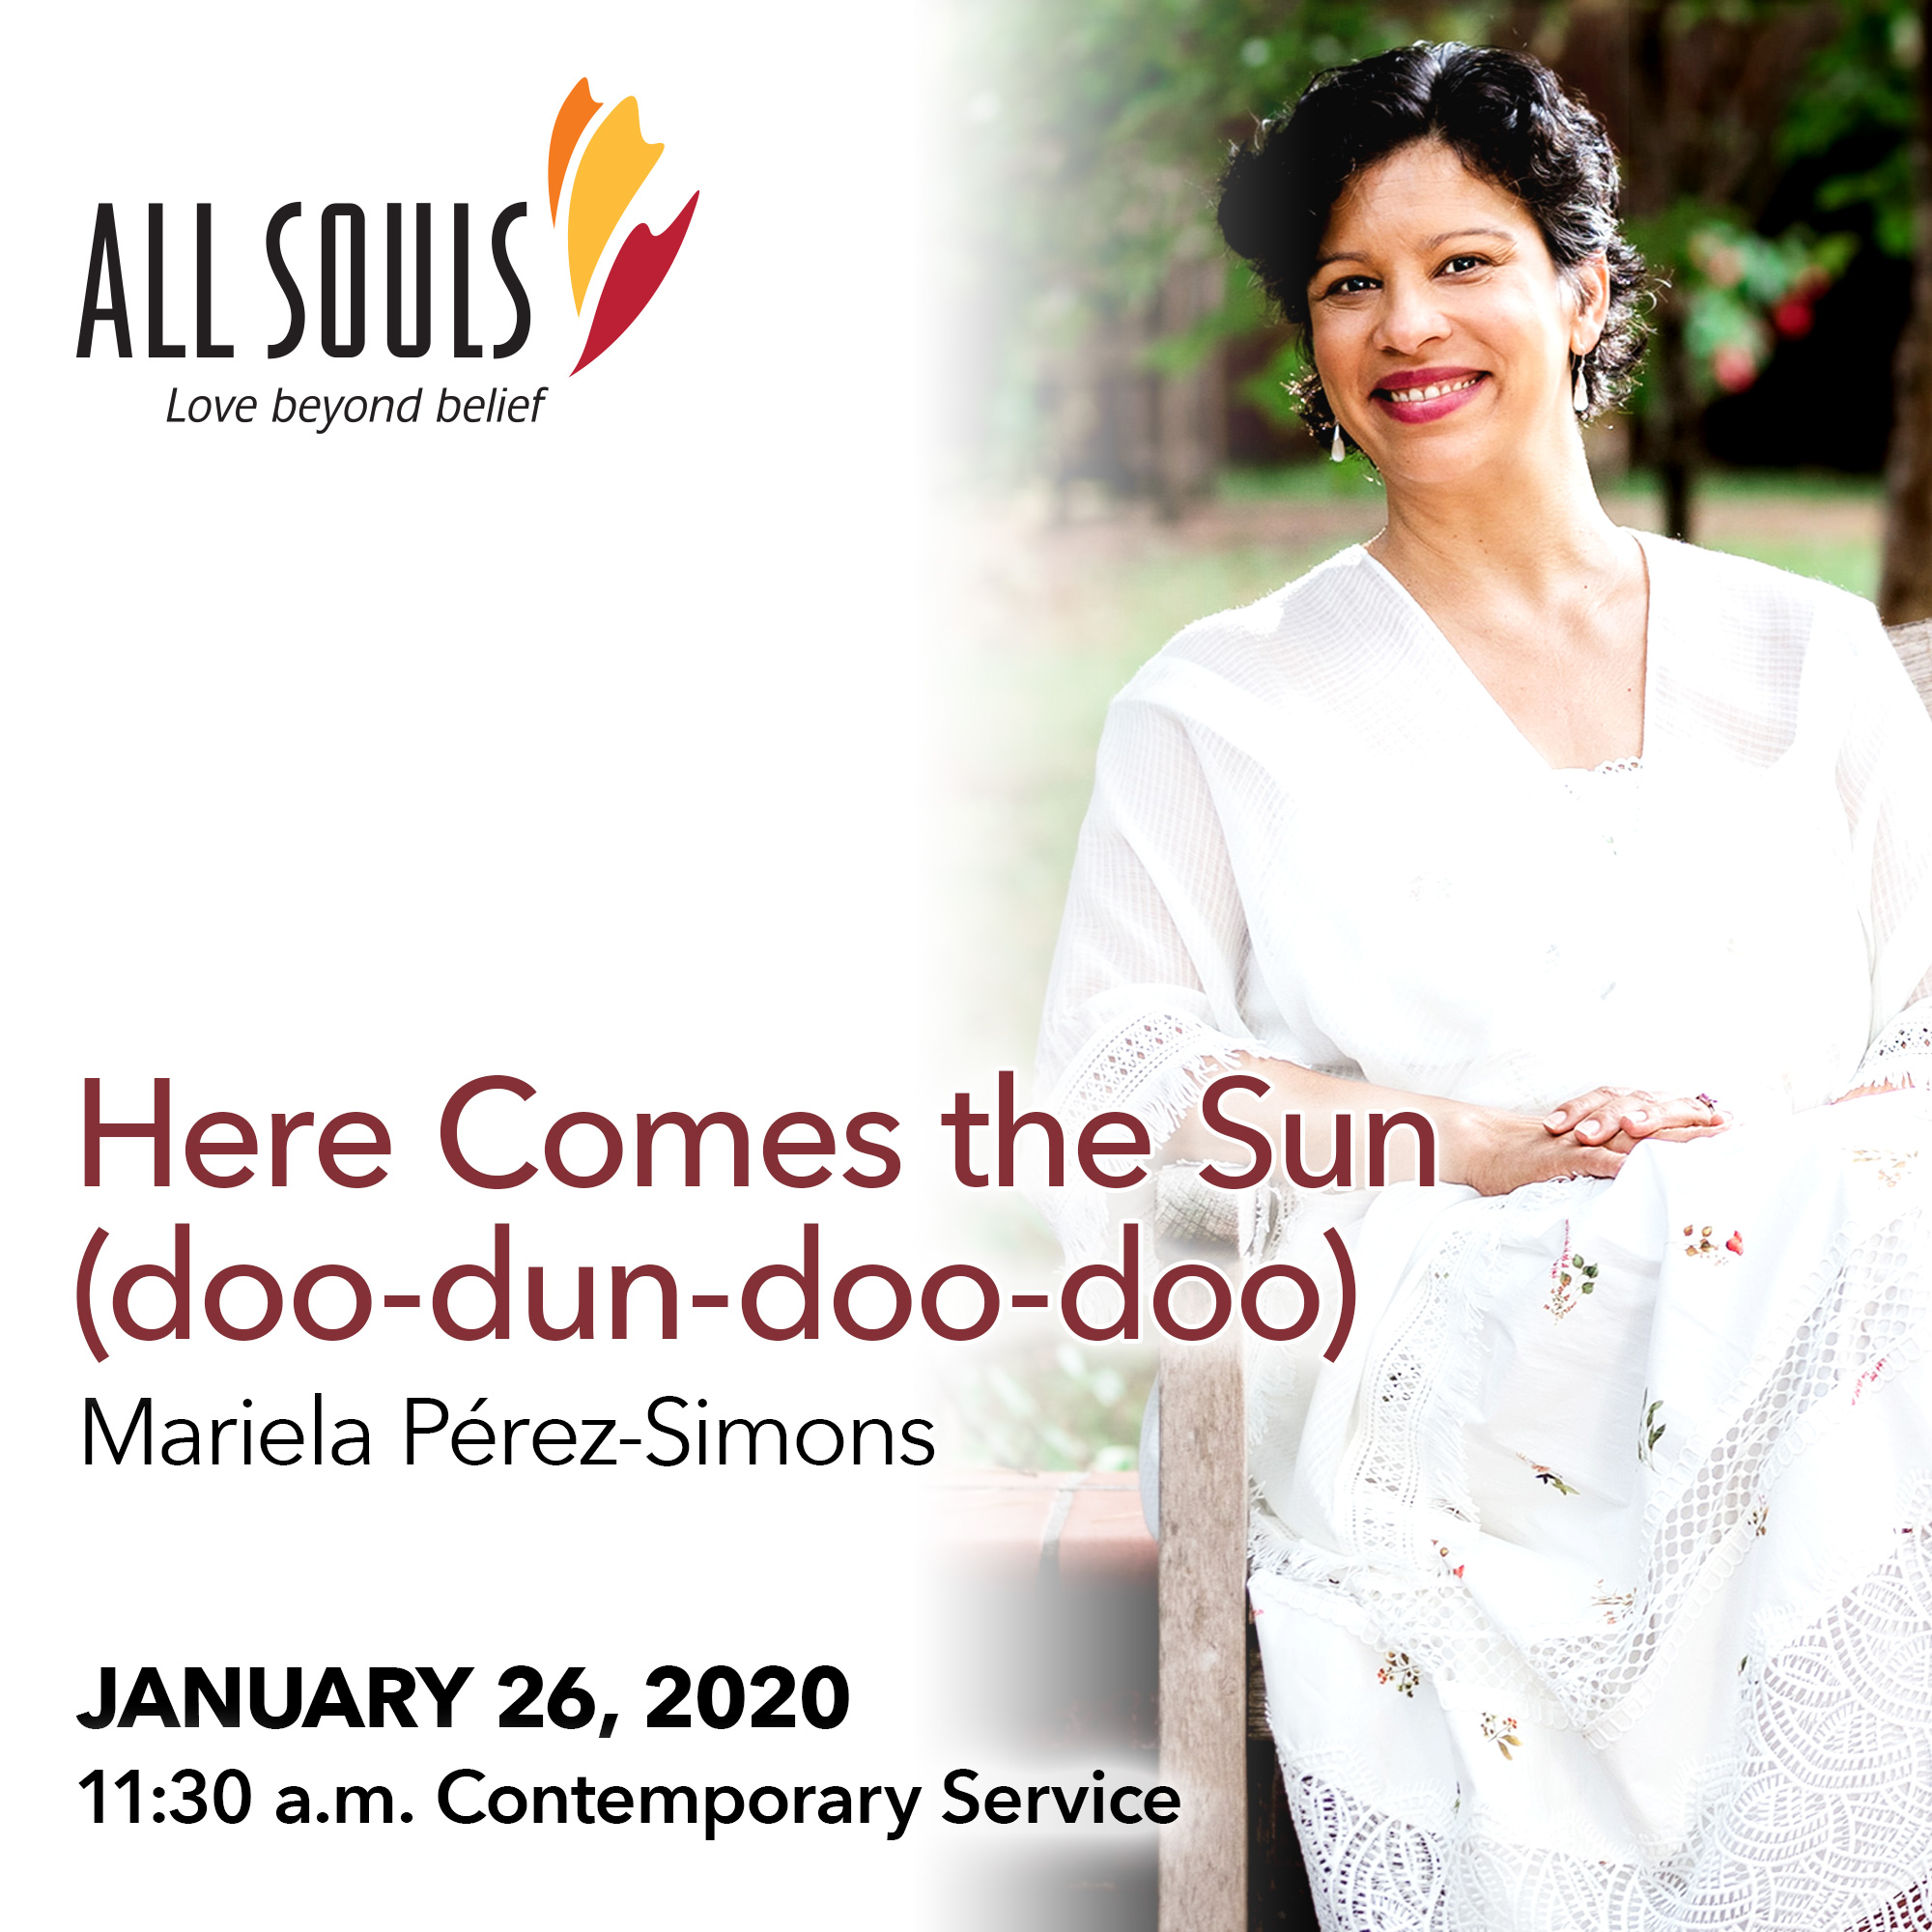 'HERE COMES THE SUN (DOO-DUN-DOO-DOO)' - A sermon by Mariela Pérez-Simons (Contemporary Service) show art